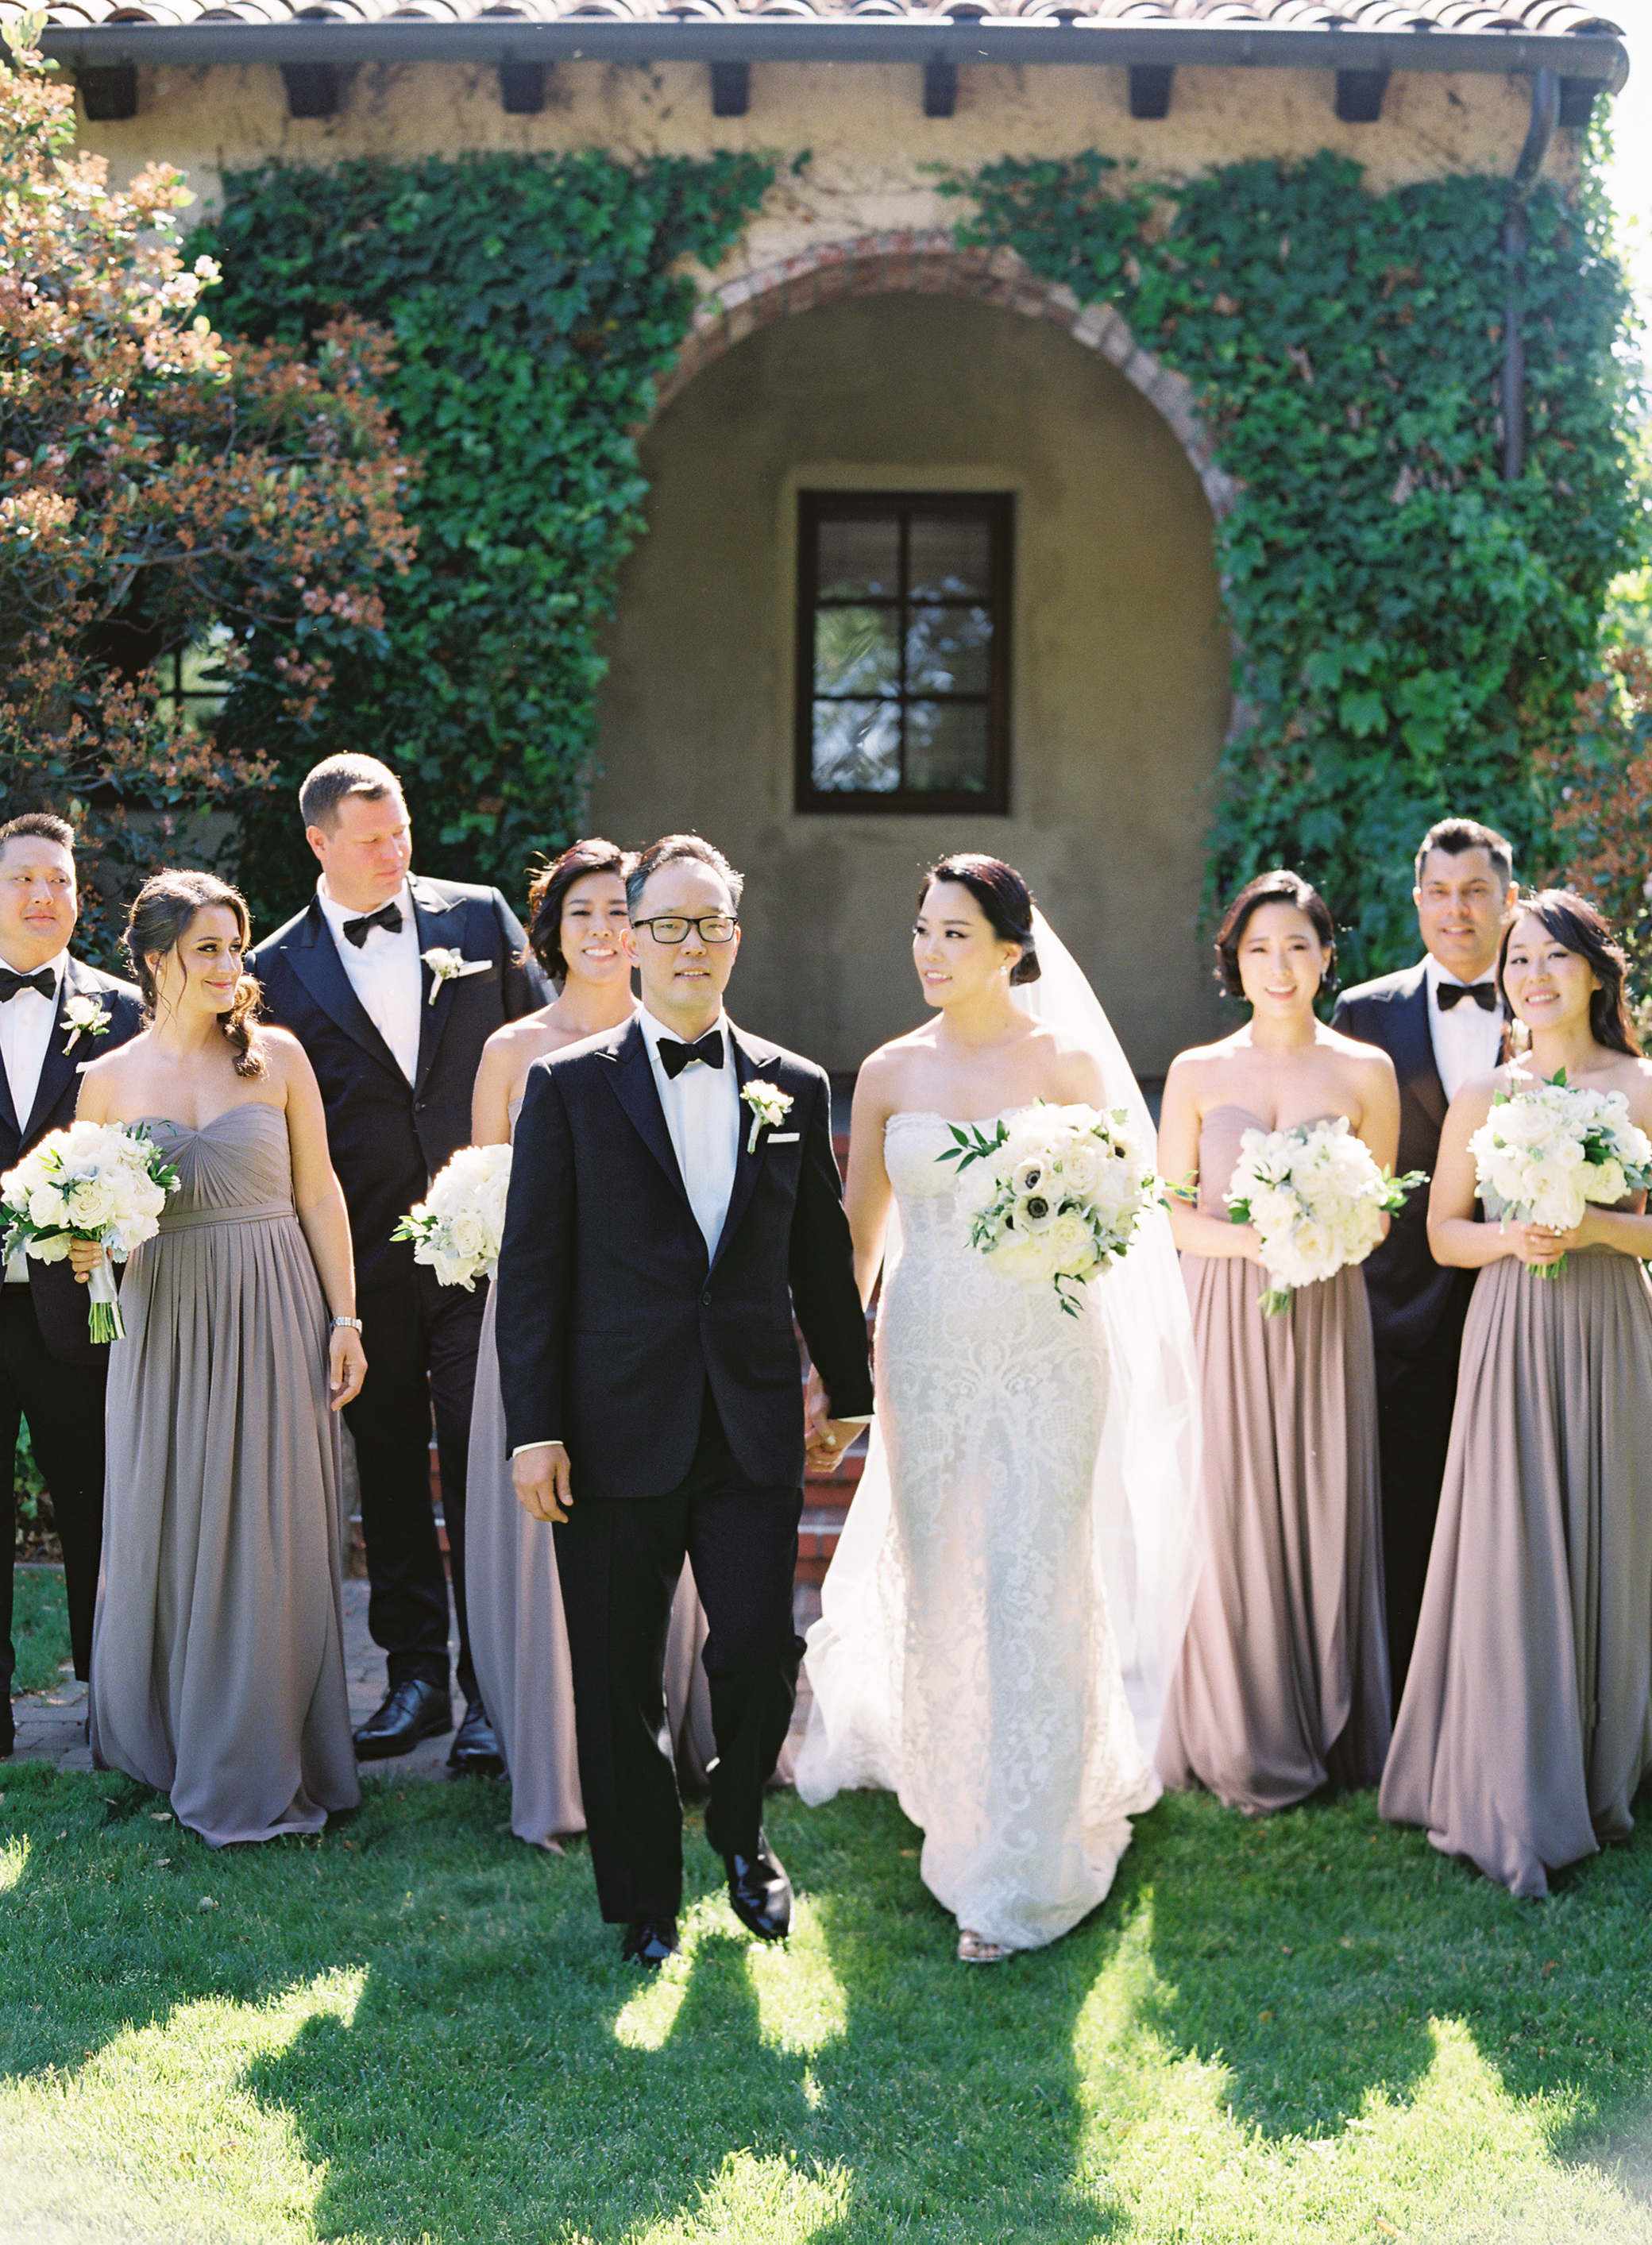 Meghan Mehan Photography - Sonoma Golf Club Wedding - California Film Wedding Photographer - 031.jpg